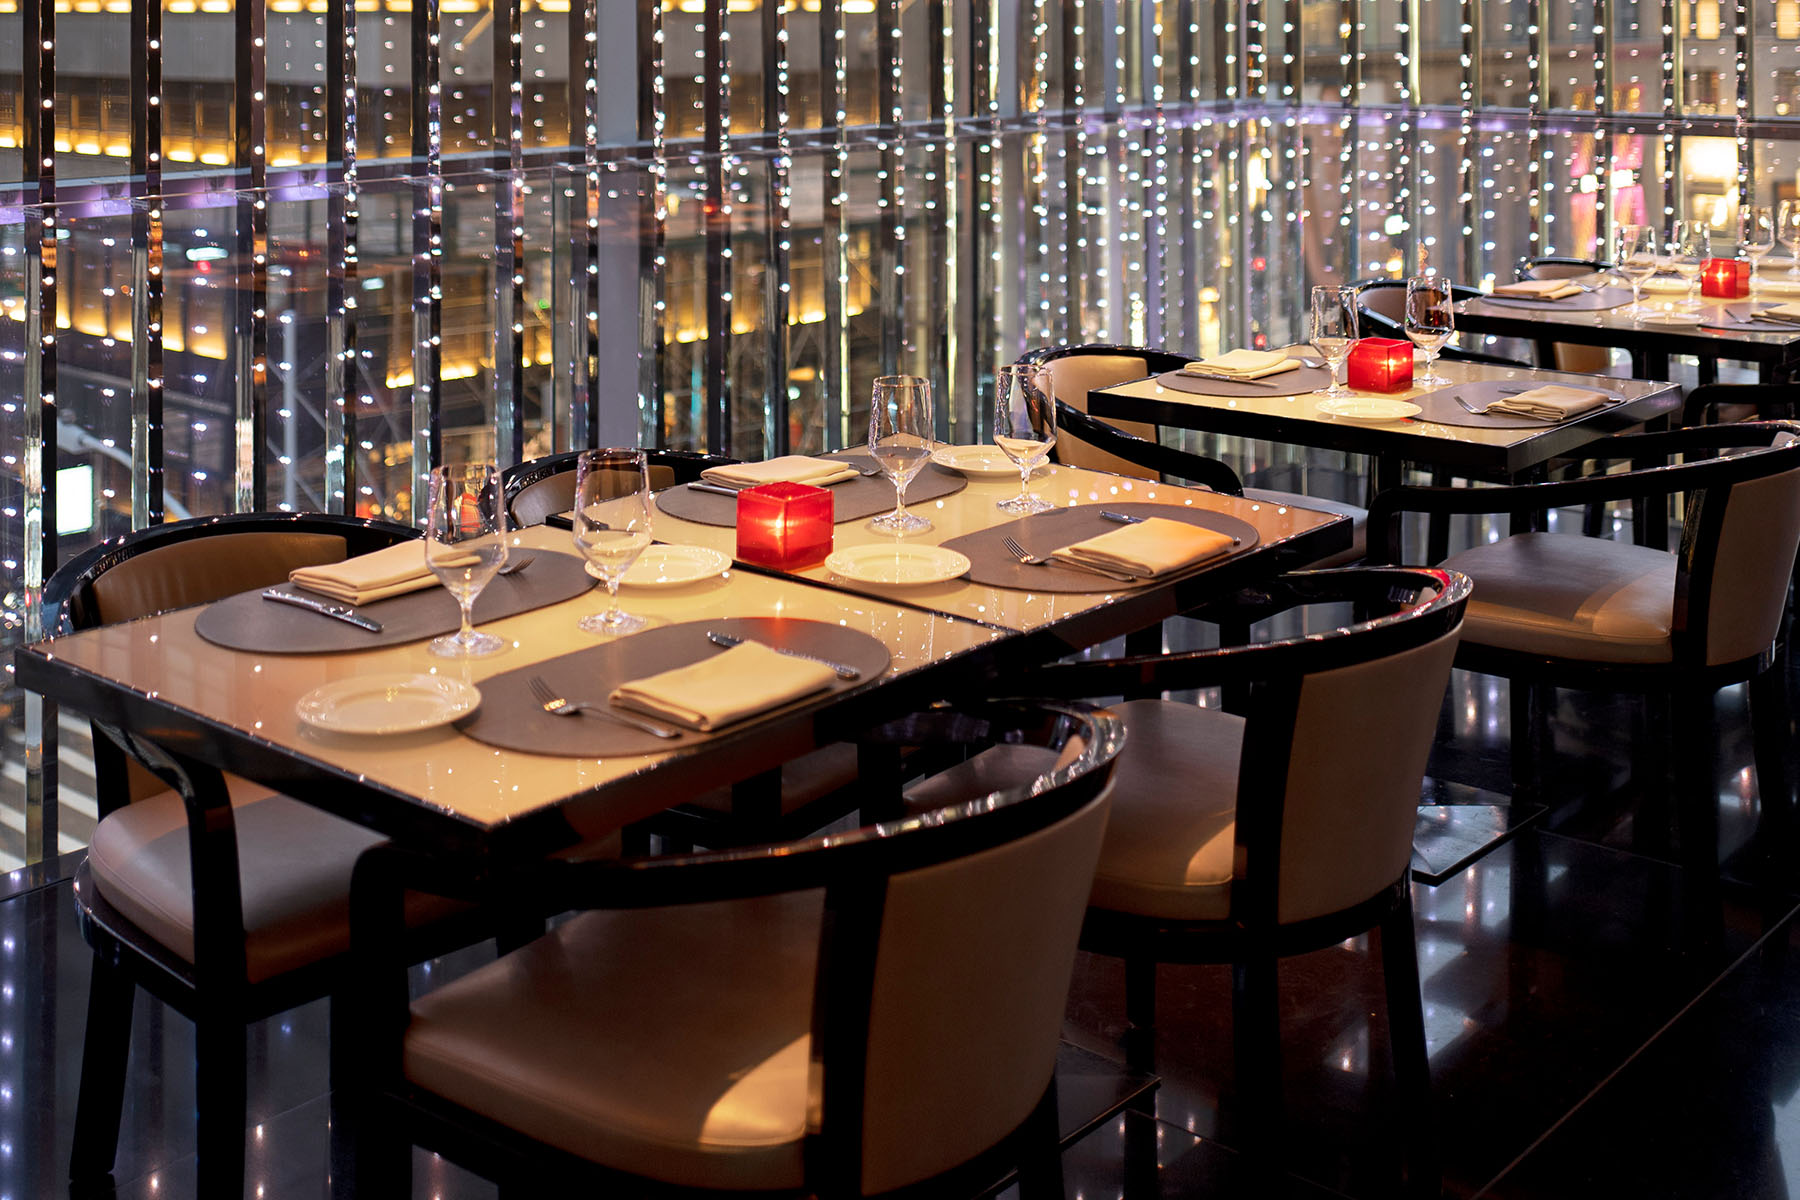 Photo #6 Main Dining Room at Armani / Ristorante 5th Avenue